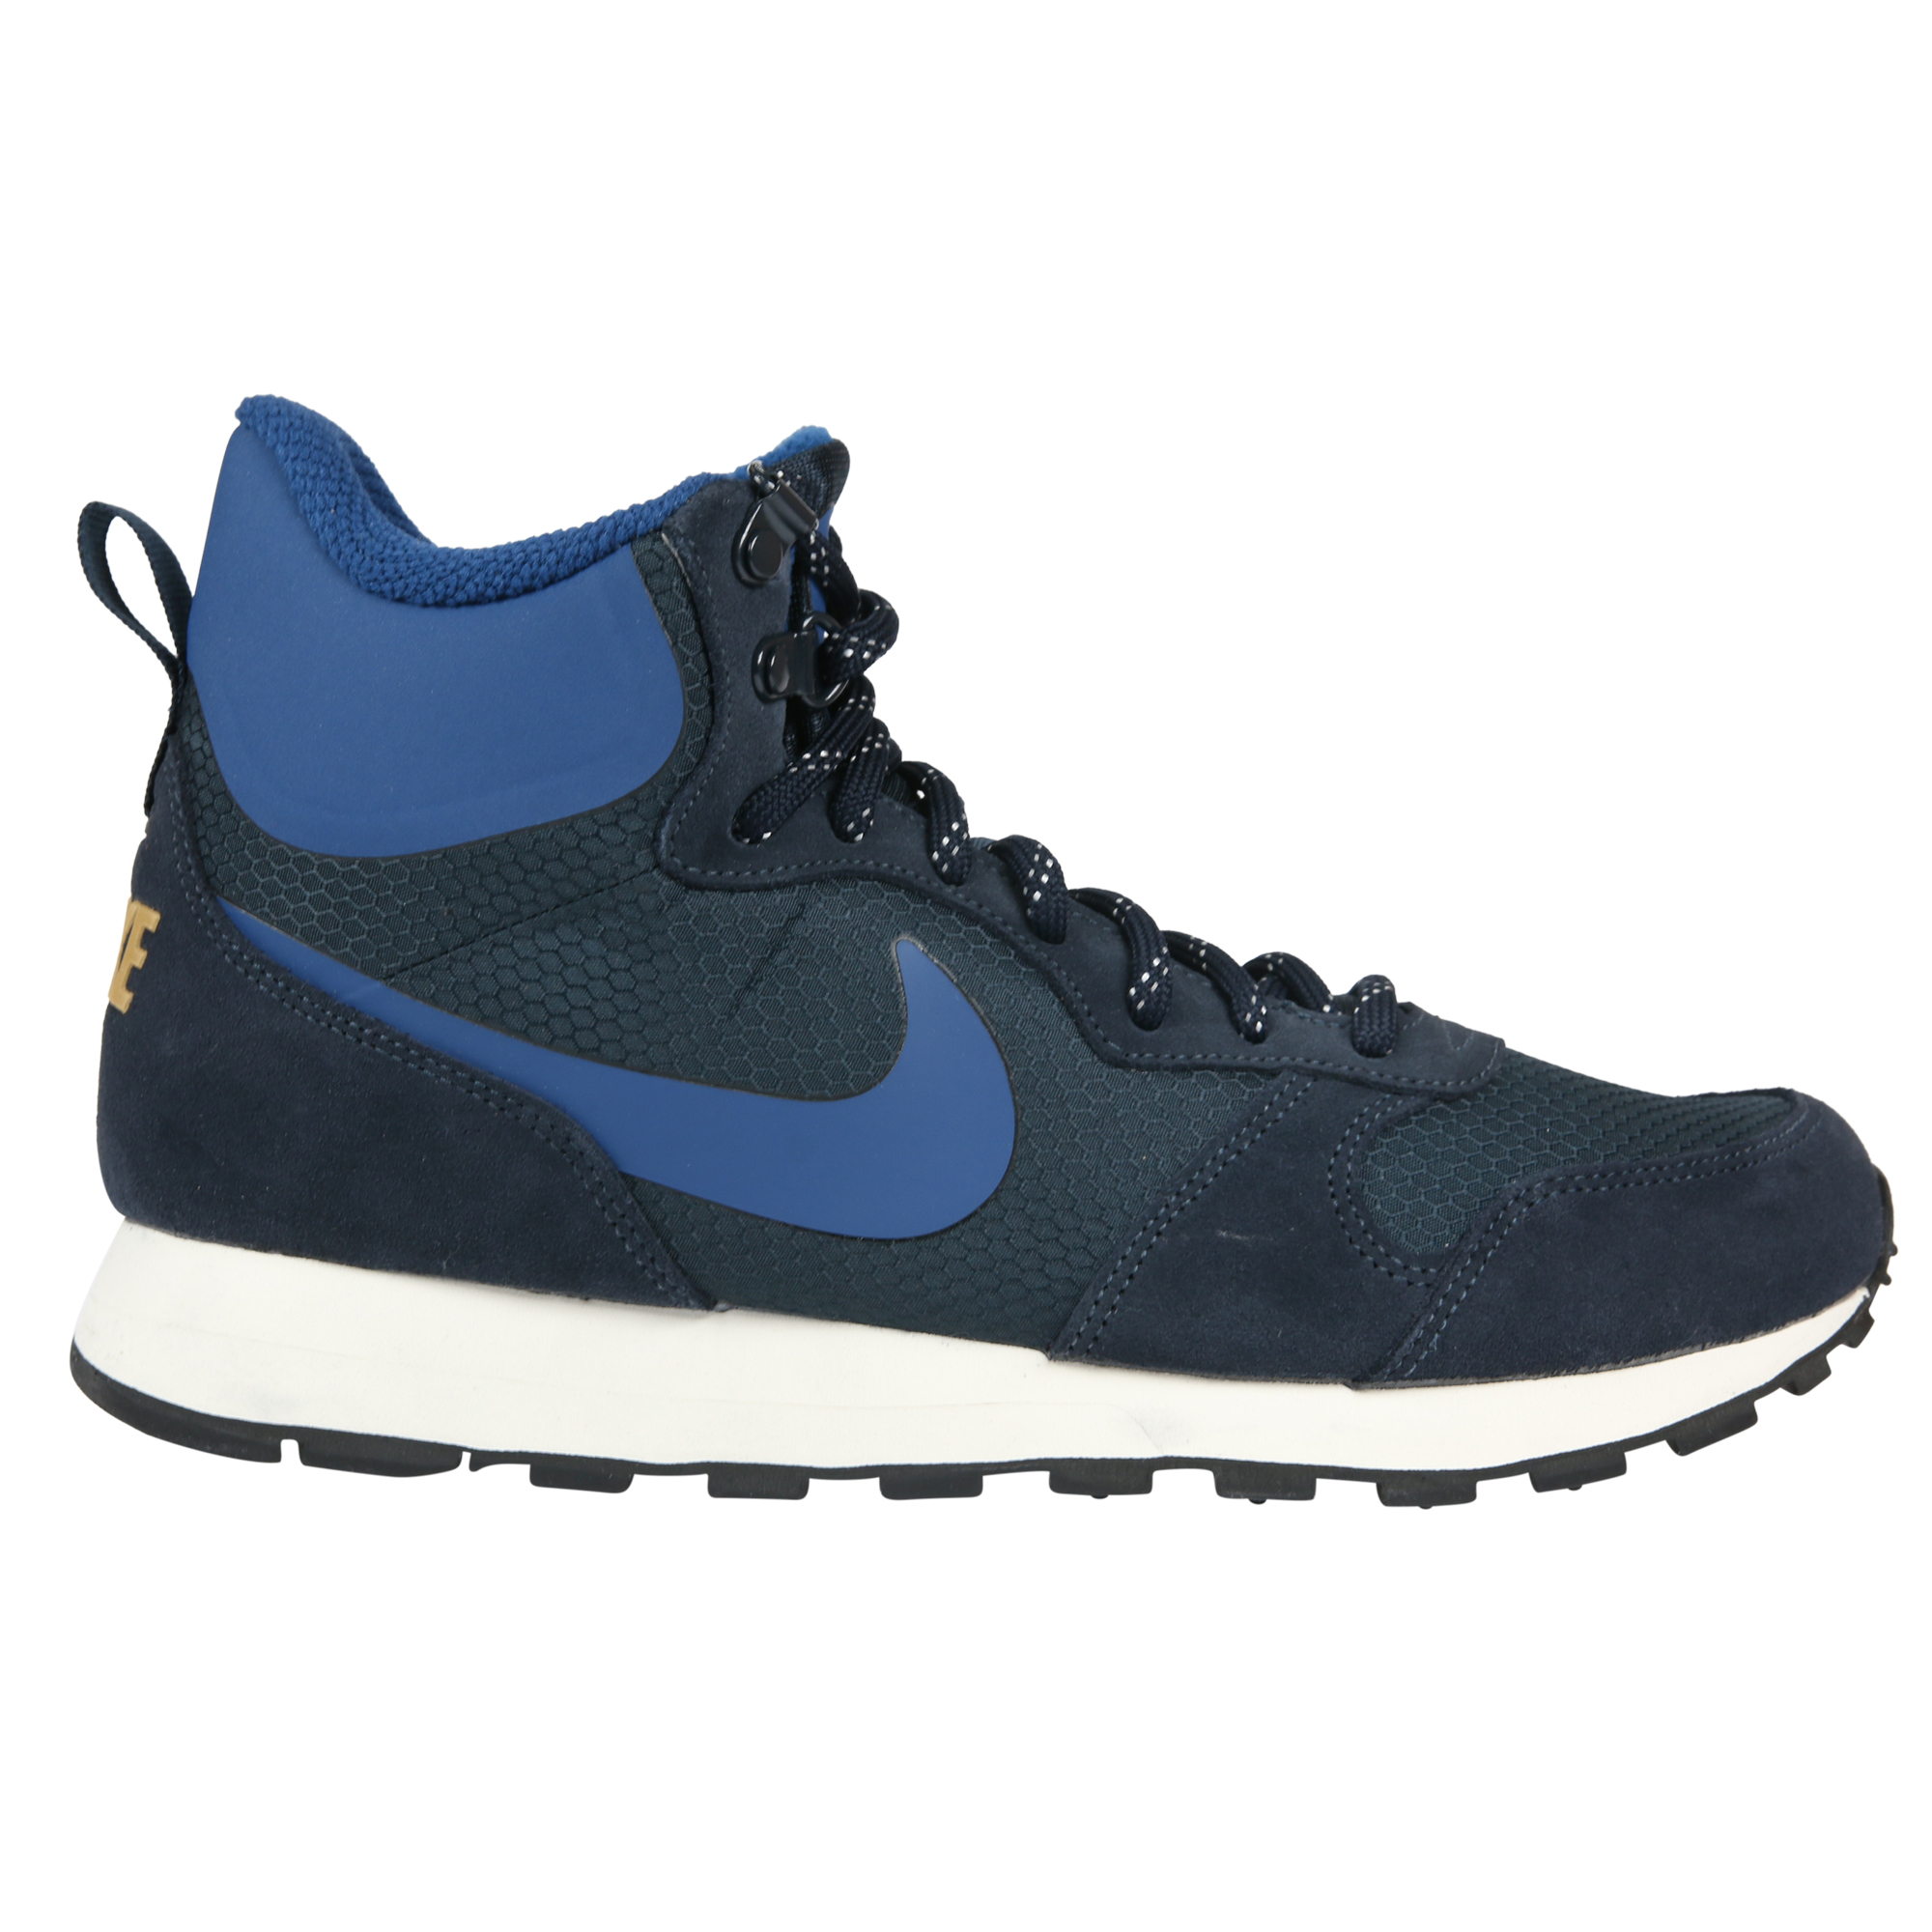 nike md runner 2 mid premium shoes sneakers boots winter men 39 s ebay. Black Bedroom Furniture Sets. Home Design Ideas